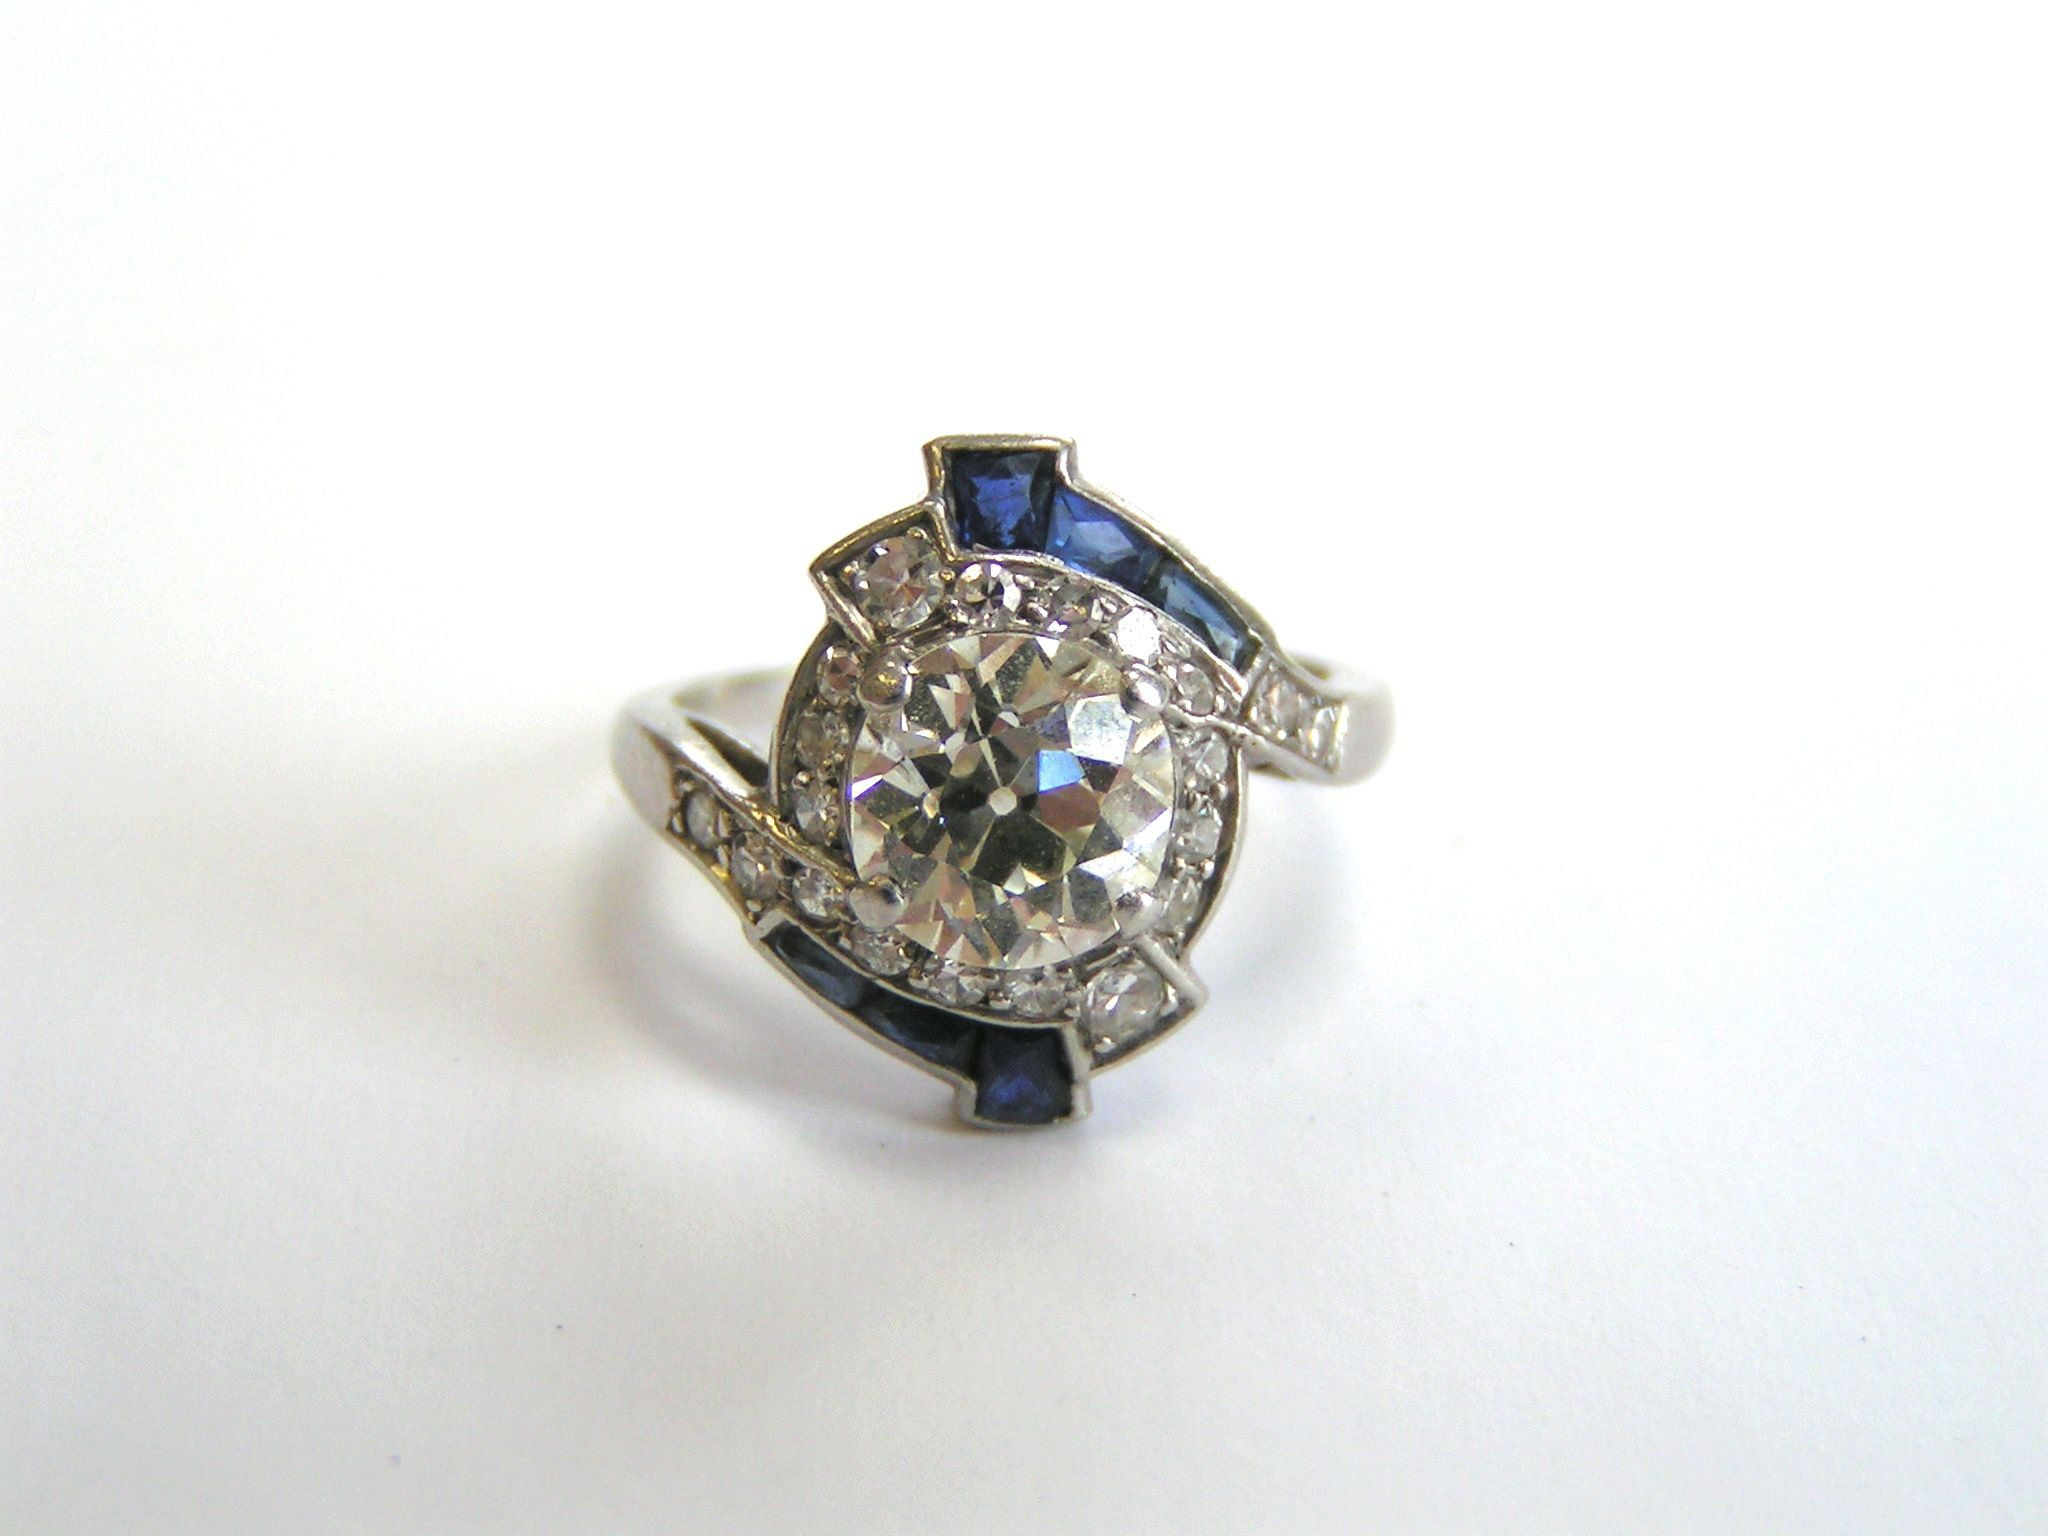 d1a978090 Pin by Lippa's Estate and Fine Jewelry on Sold Items   Engagement Rings,  Princess cut diamonds, Diamond engagement rings